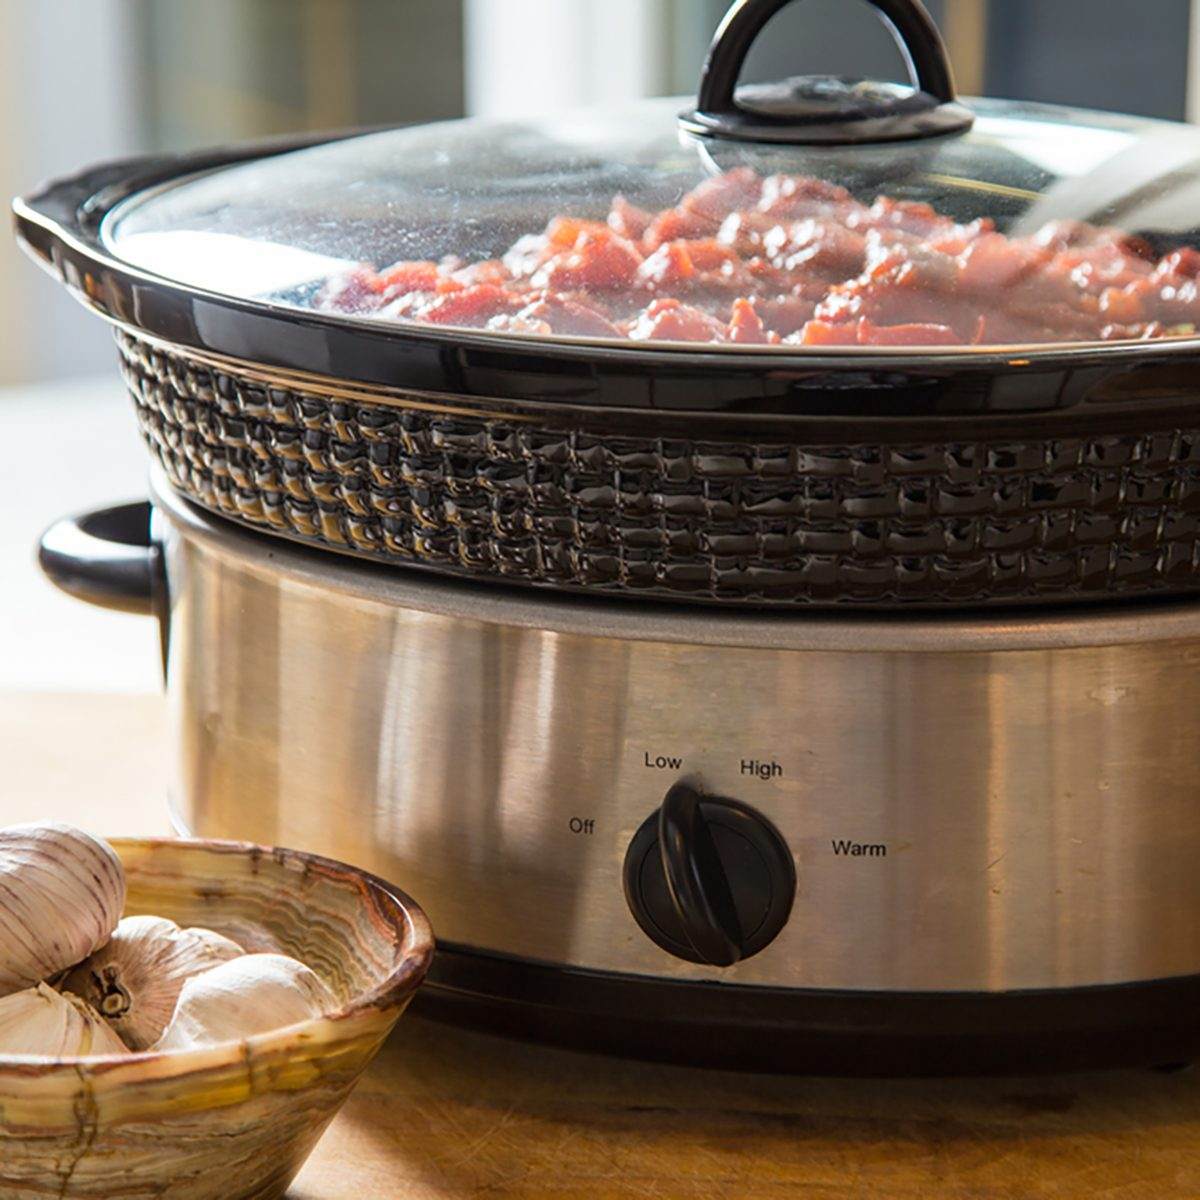 preparing ahead of time makes hearty slow cooker meals are a favorite for fall and winter cooking